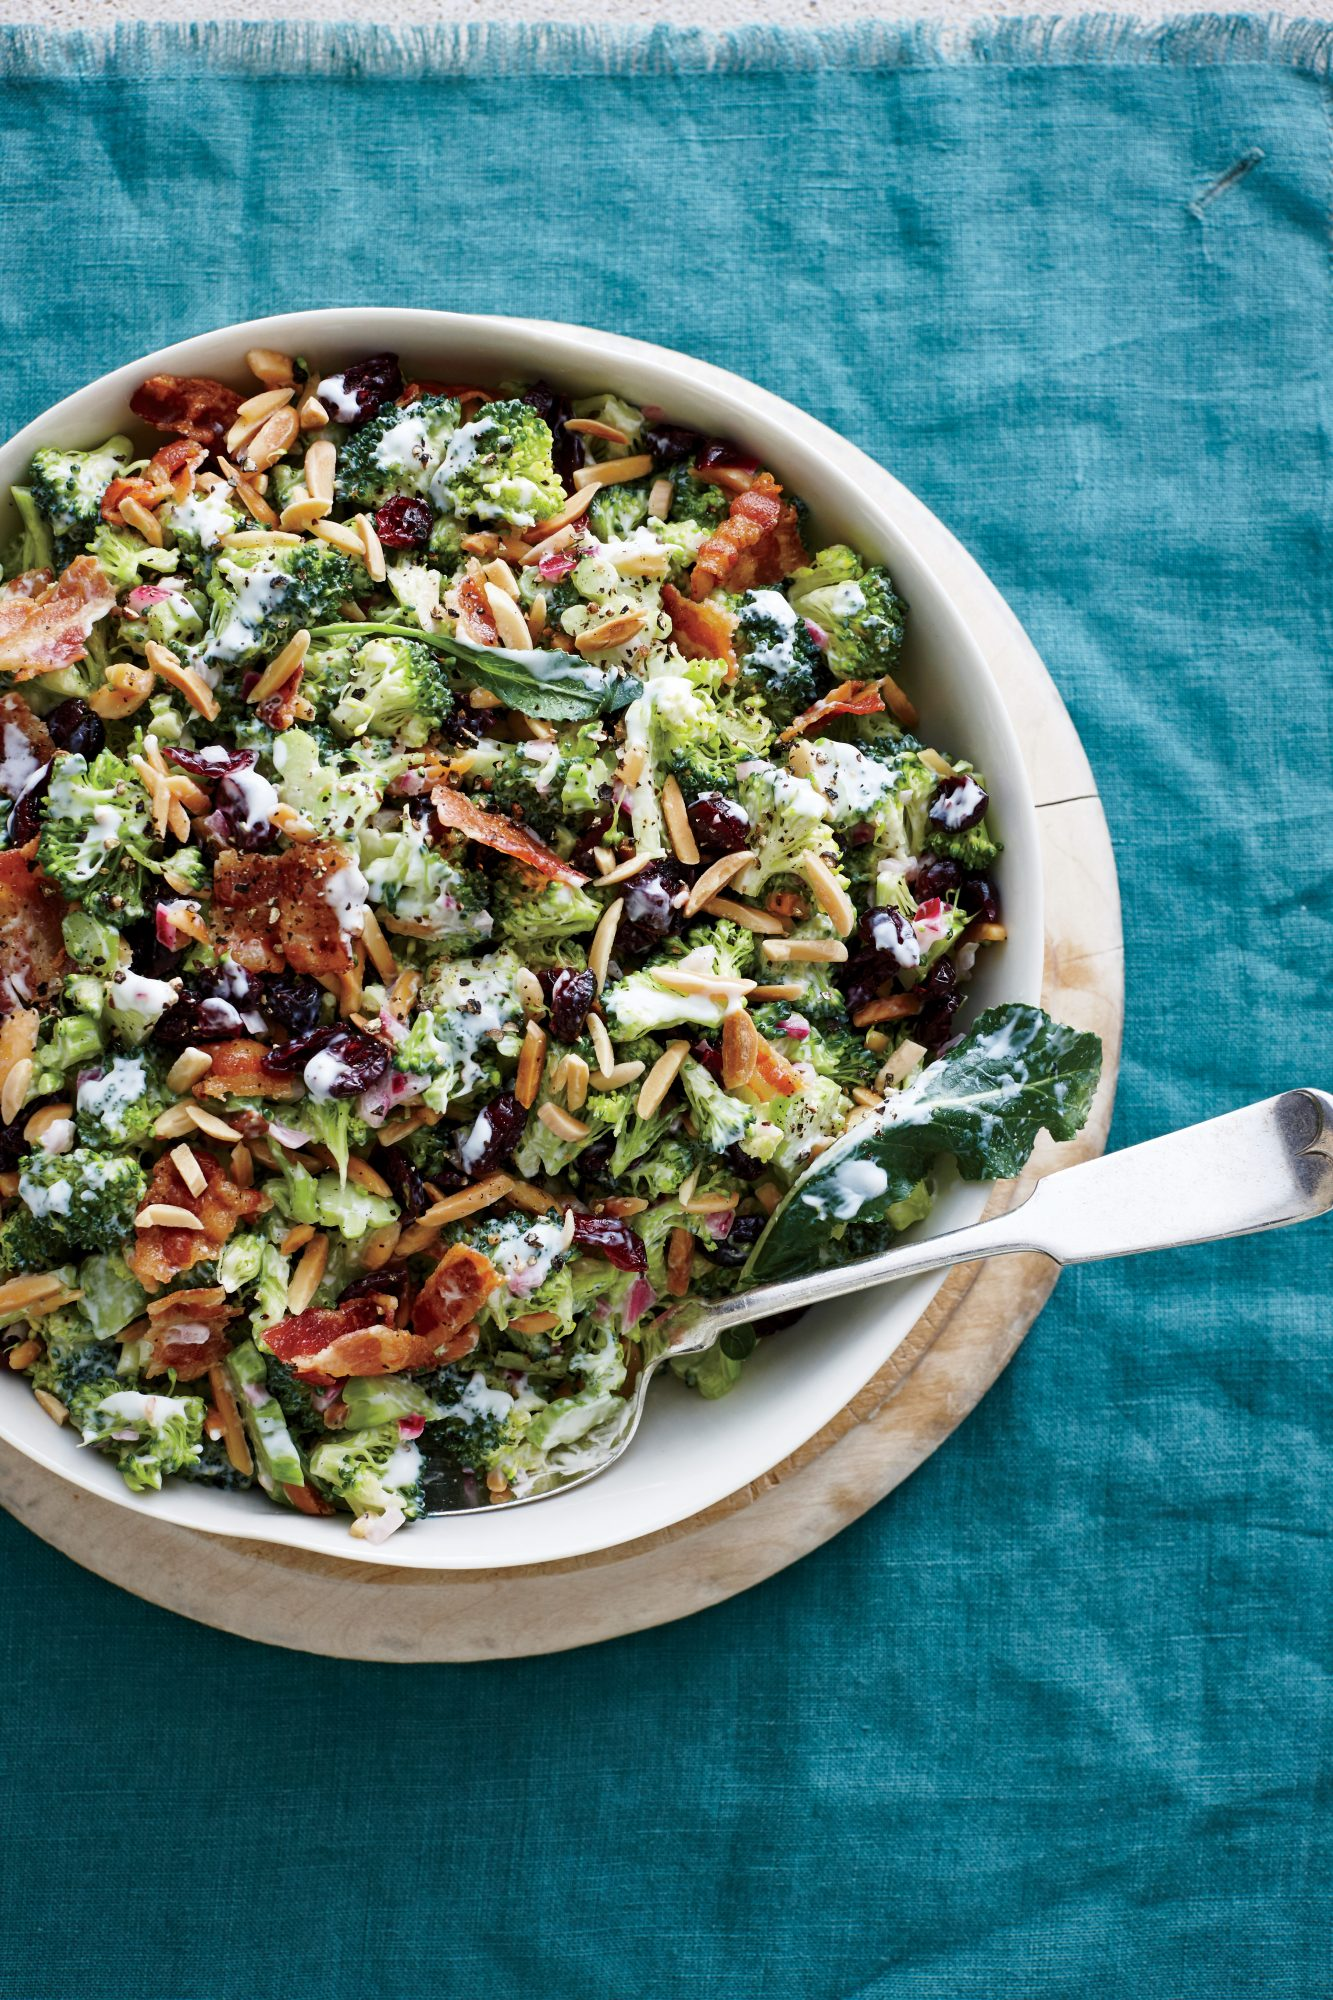 Cranberry Almond Broccoli Salad Recipe Myrecipes